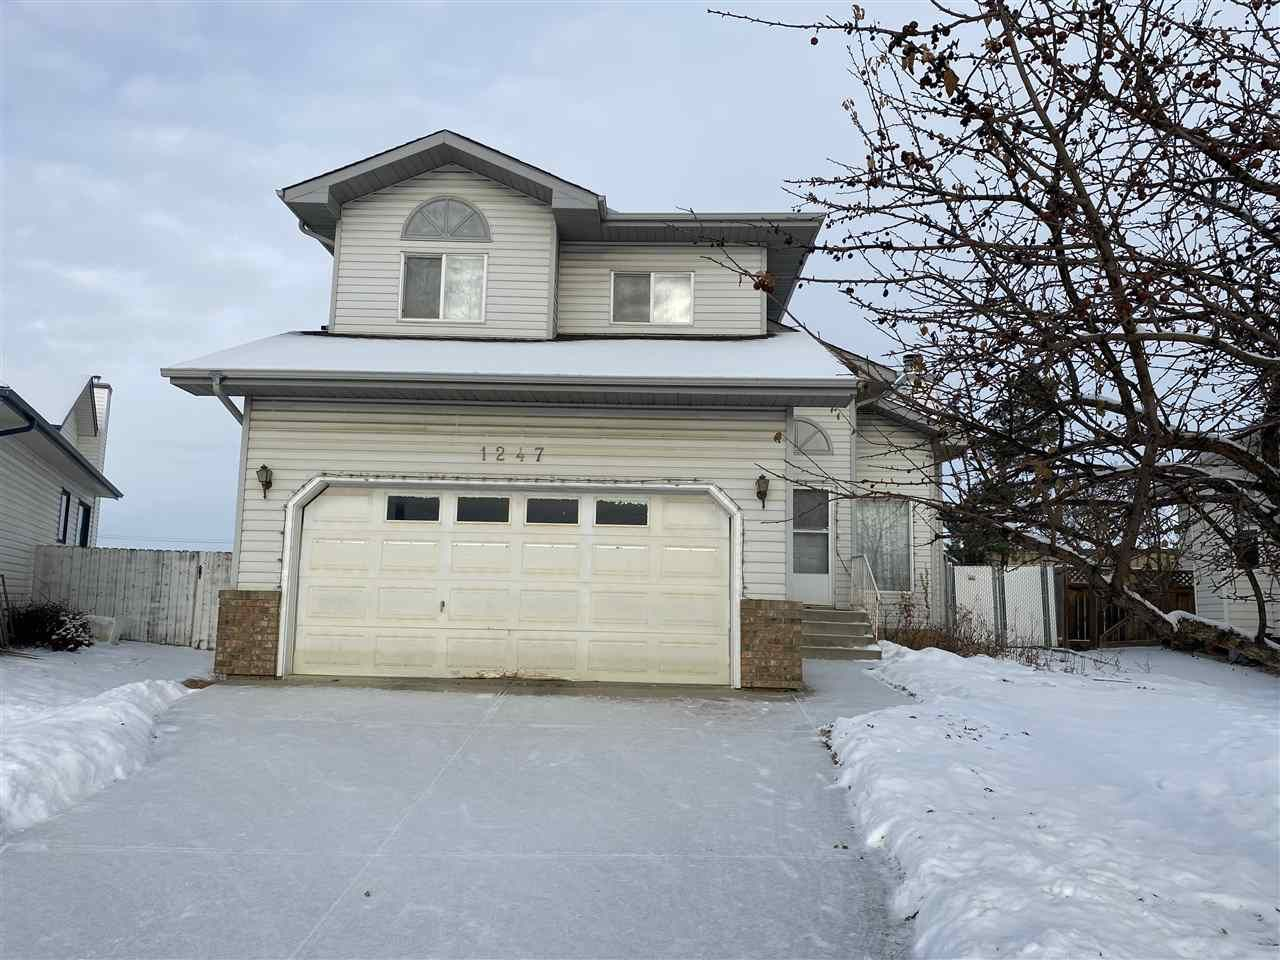 Main Photo: 1247 JOYCE Crescent in Edmonton: Zone 29 House for sale : MLS®# E4223154